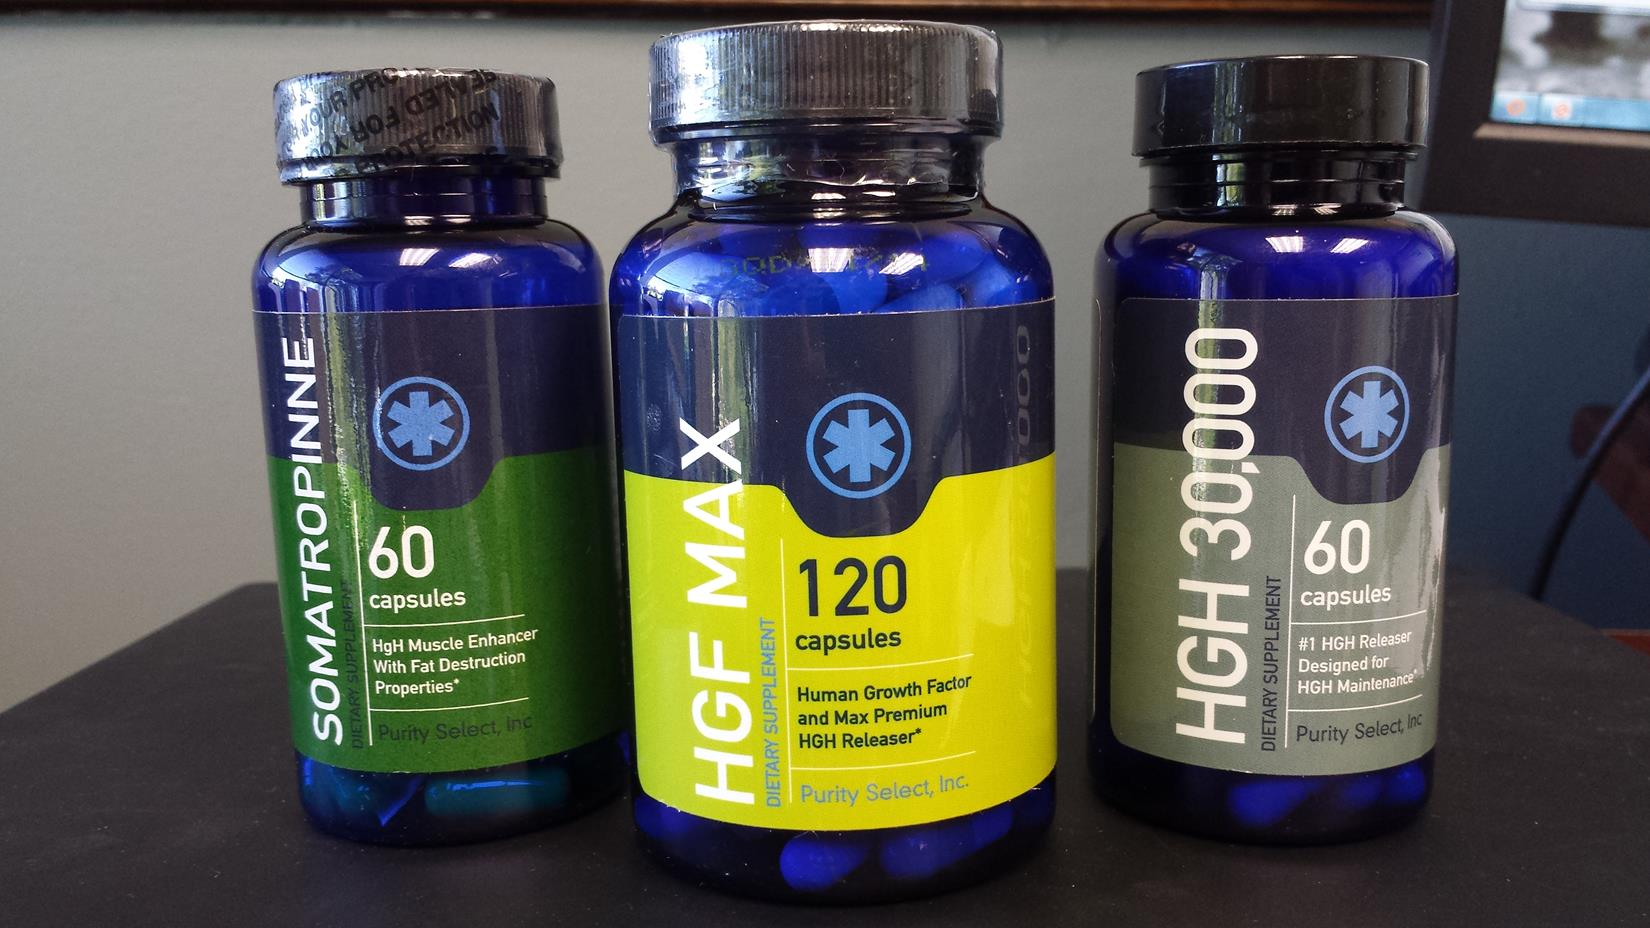 HgH.com Products Reviews & Coupon Code